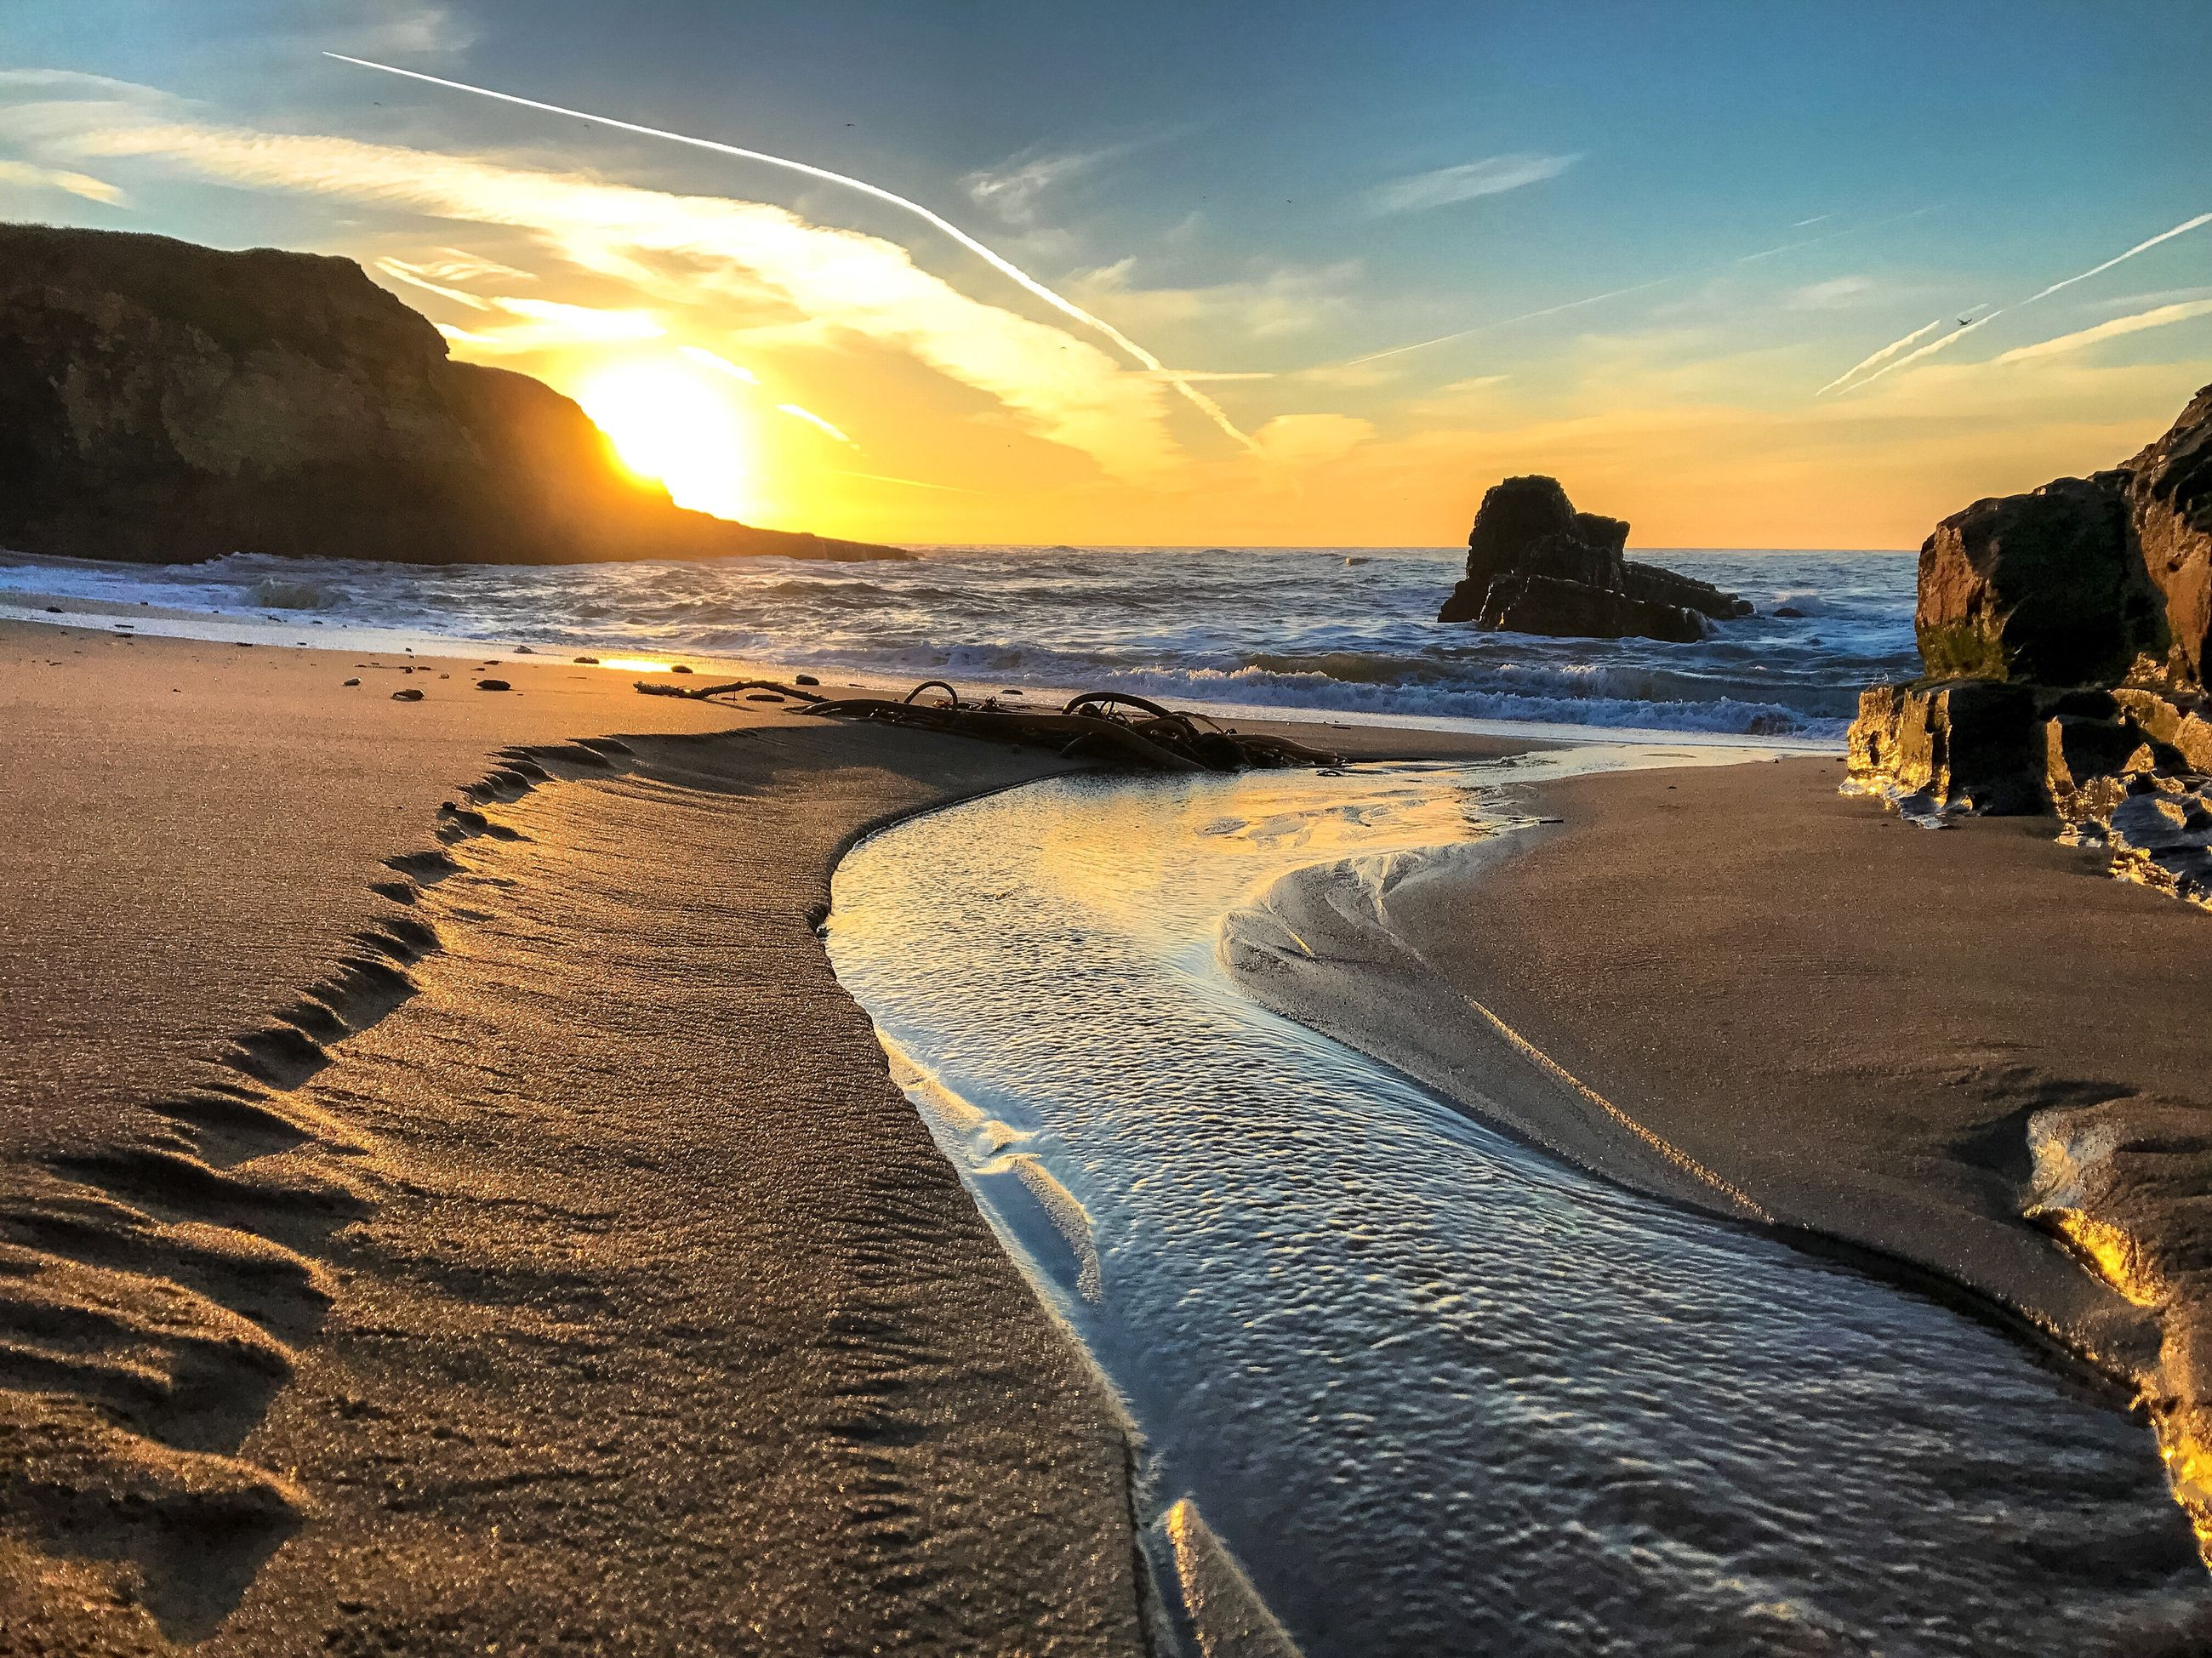 sea, beach, sand, nature, reflection, scenics, sky, horizon over water, sunlight, beauty in nature, water, sunset, outdoors, vacations, no people, wave, day